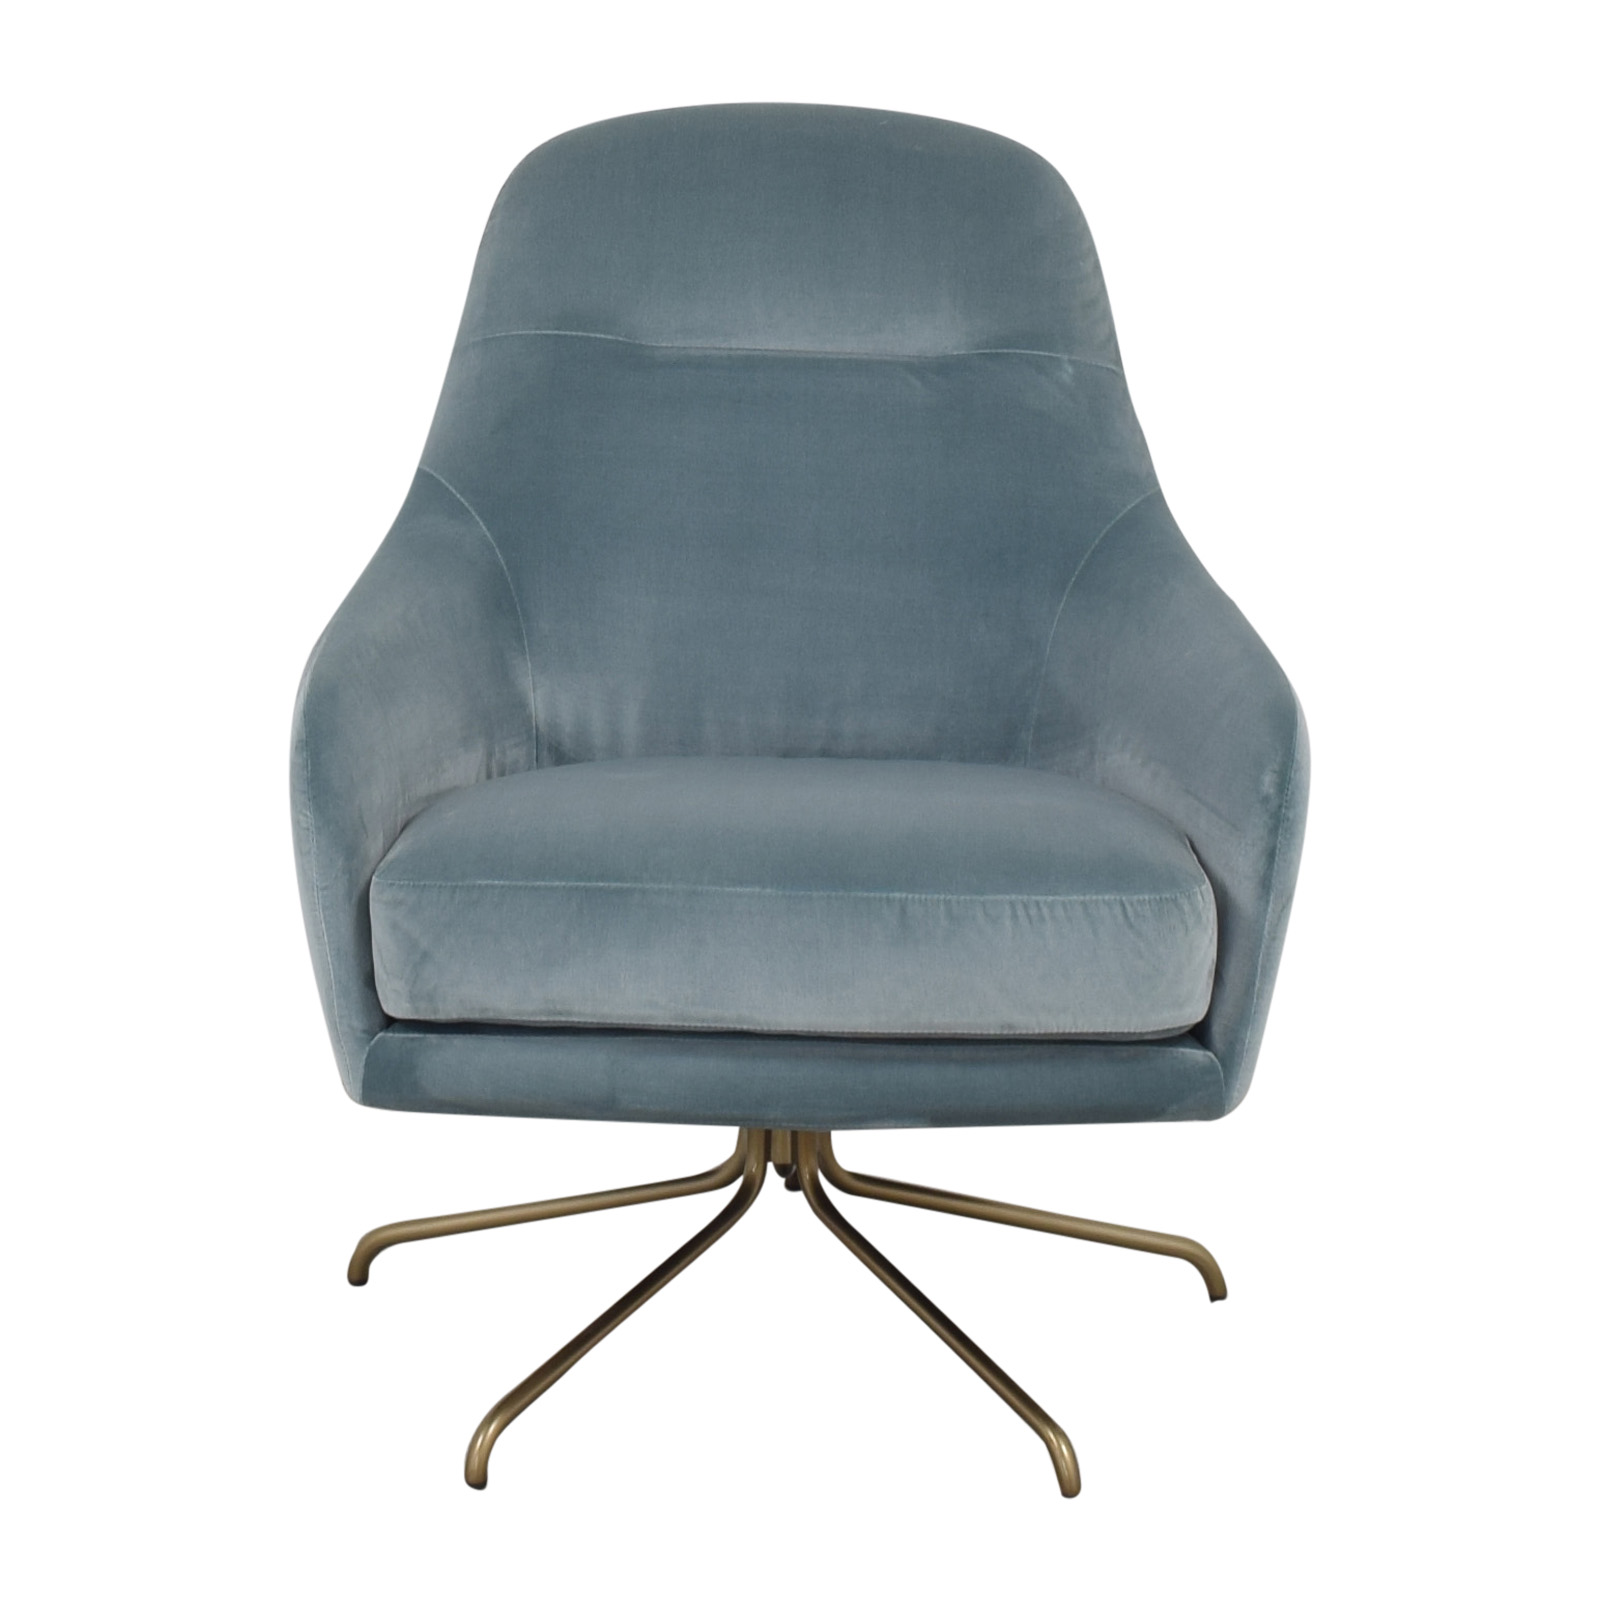 West Elm West Elm Valentina Swivel Chair Chairs